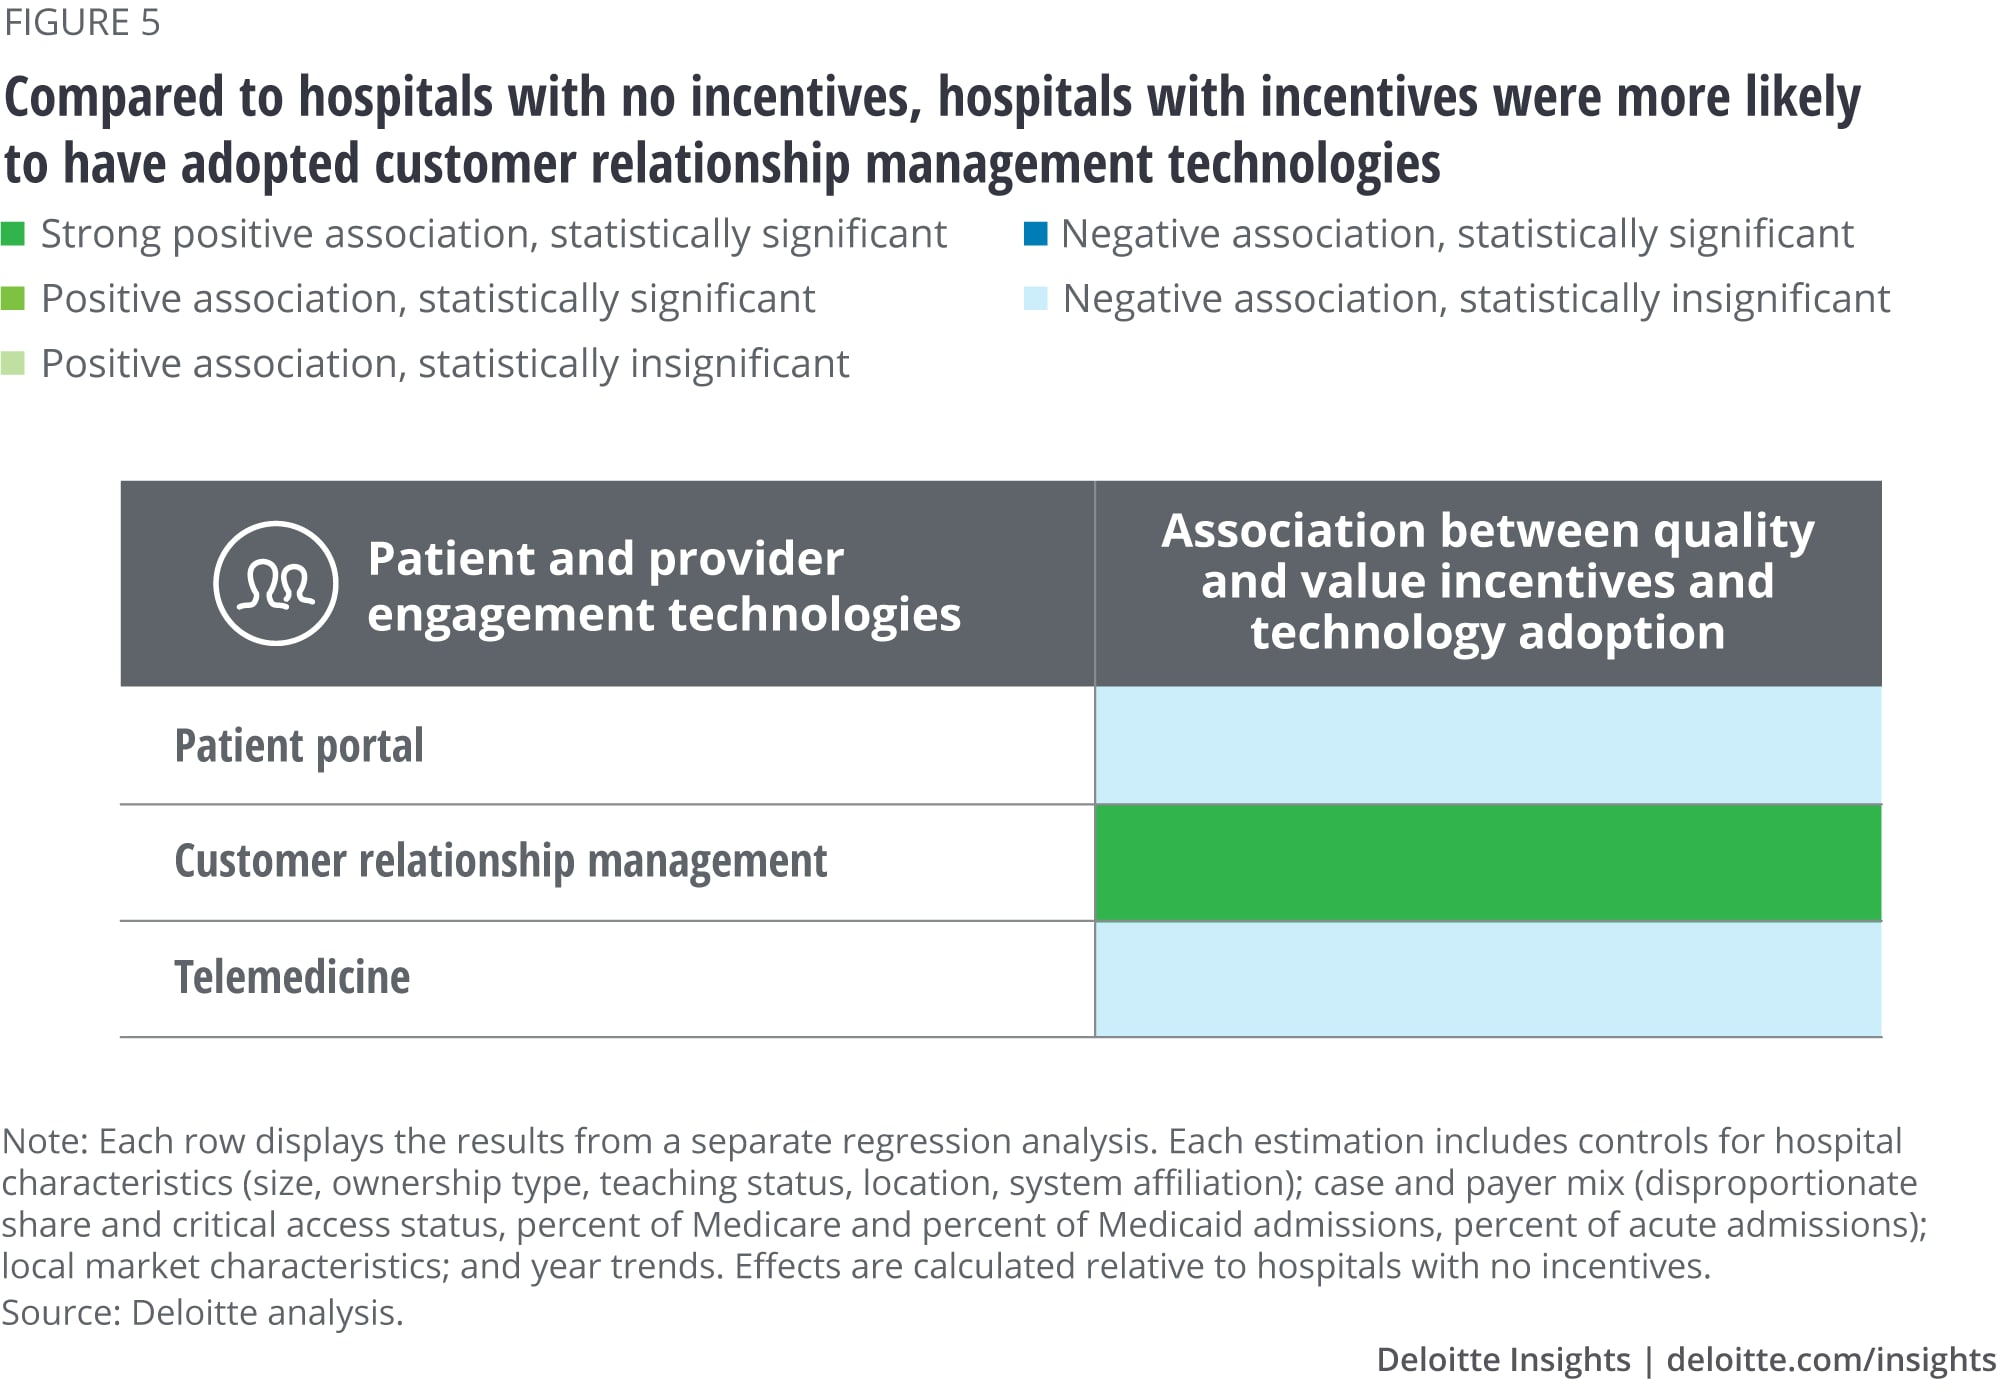 Compared to hospitals with no incentives, hospitals with incentives were more likely to have adopted customer relationship management technologies